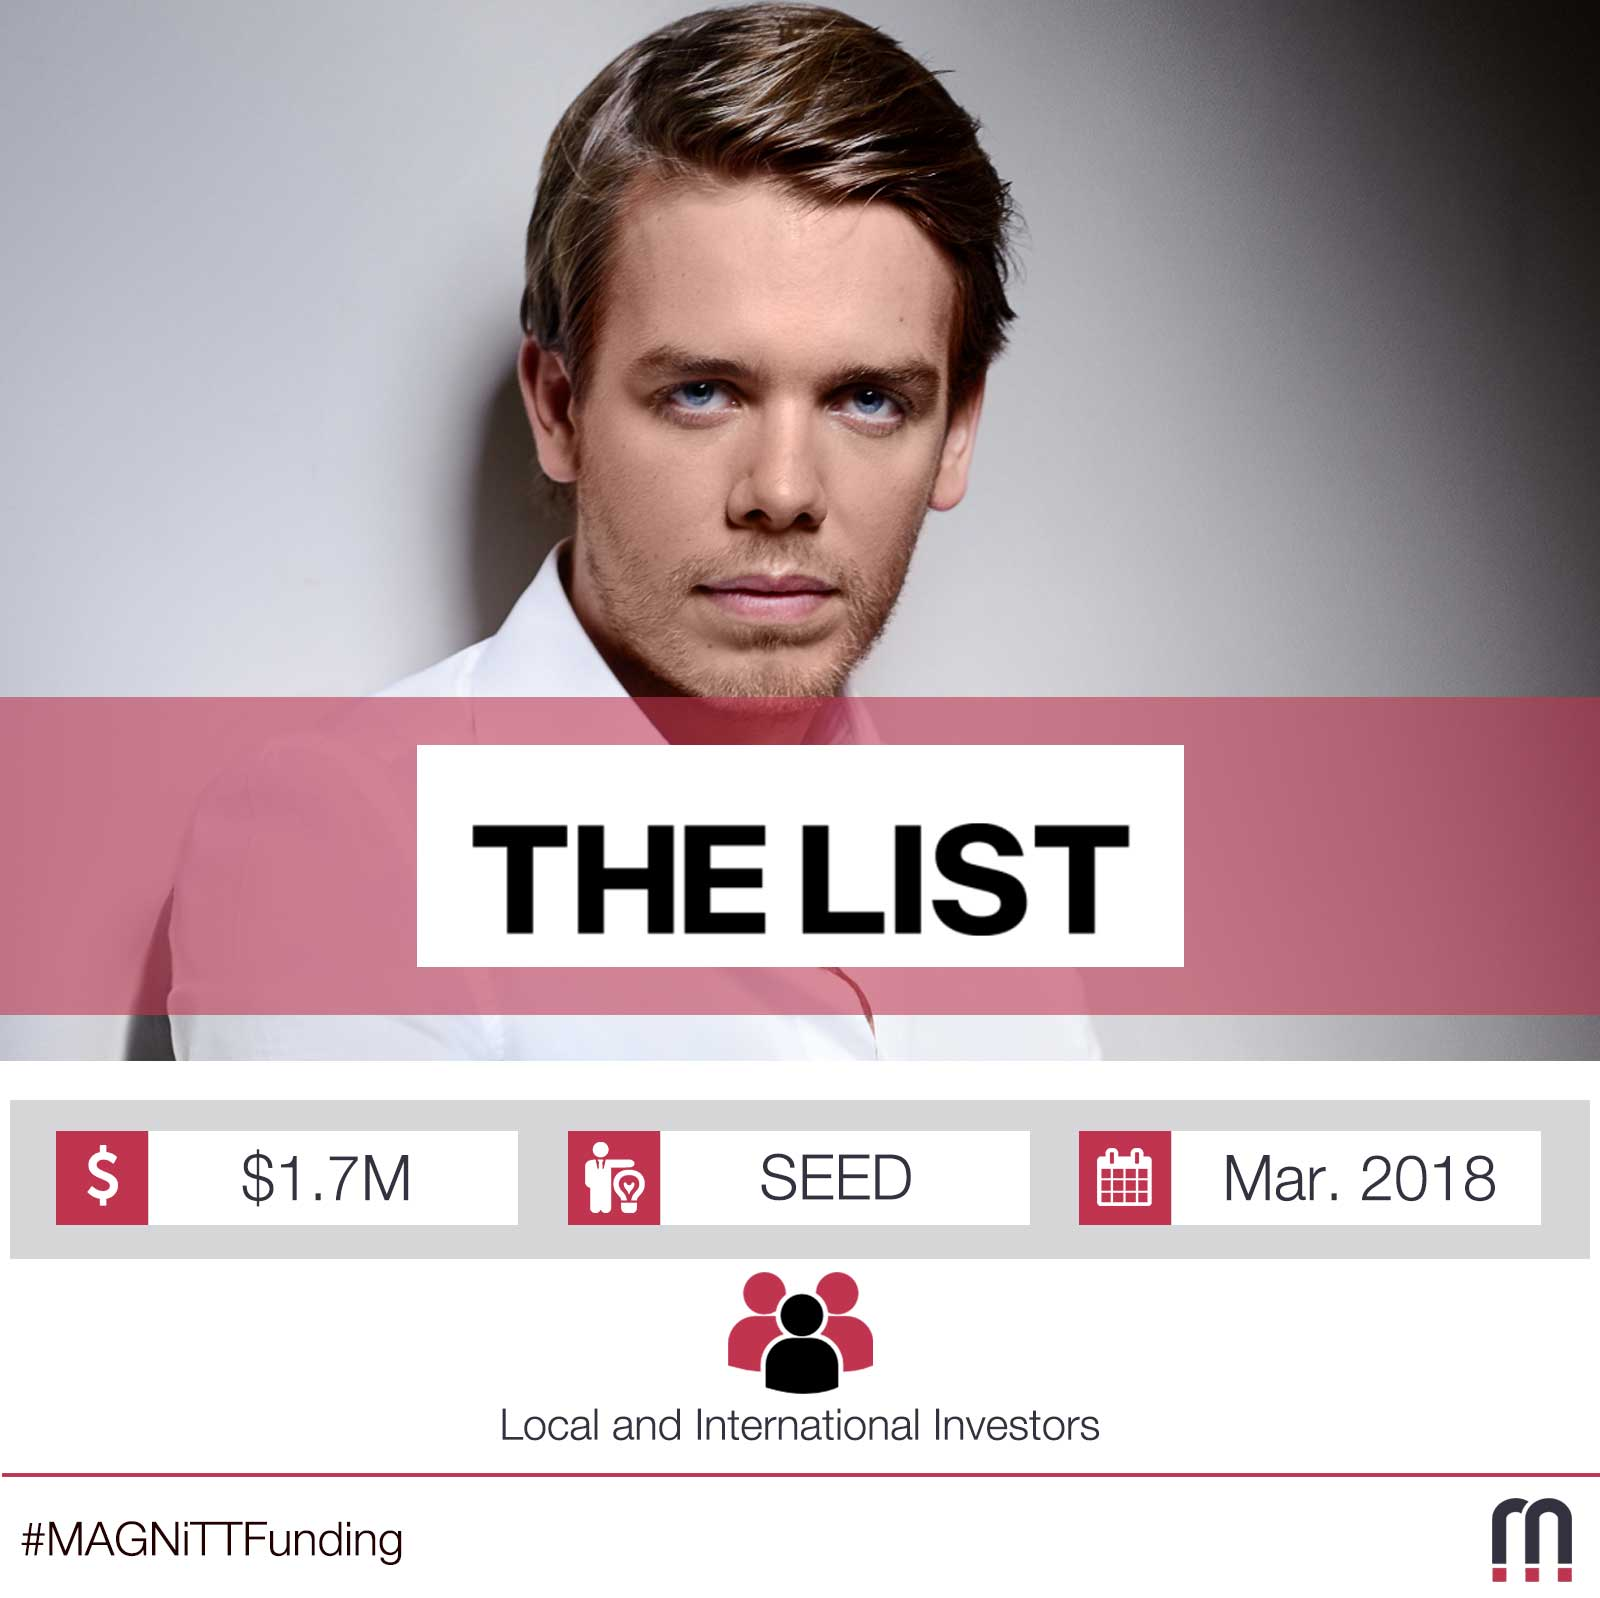 UAE-based e-commerce platform The List raises $1.7M